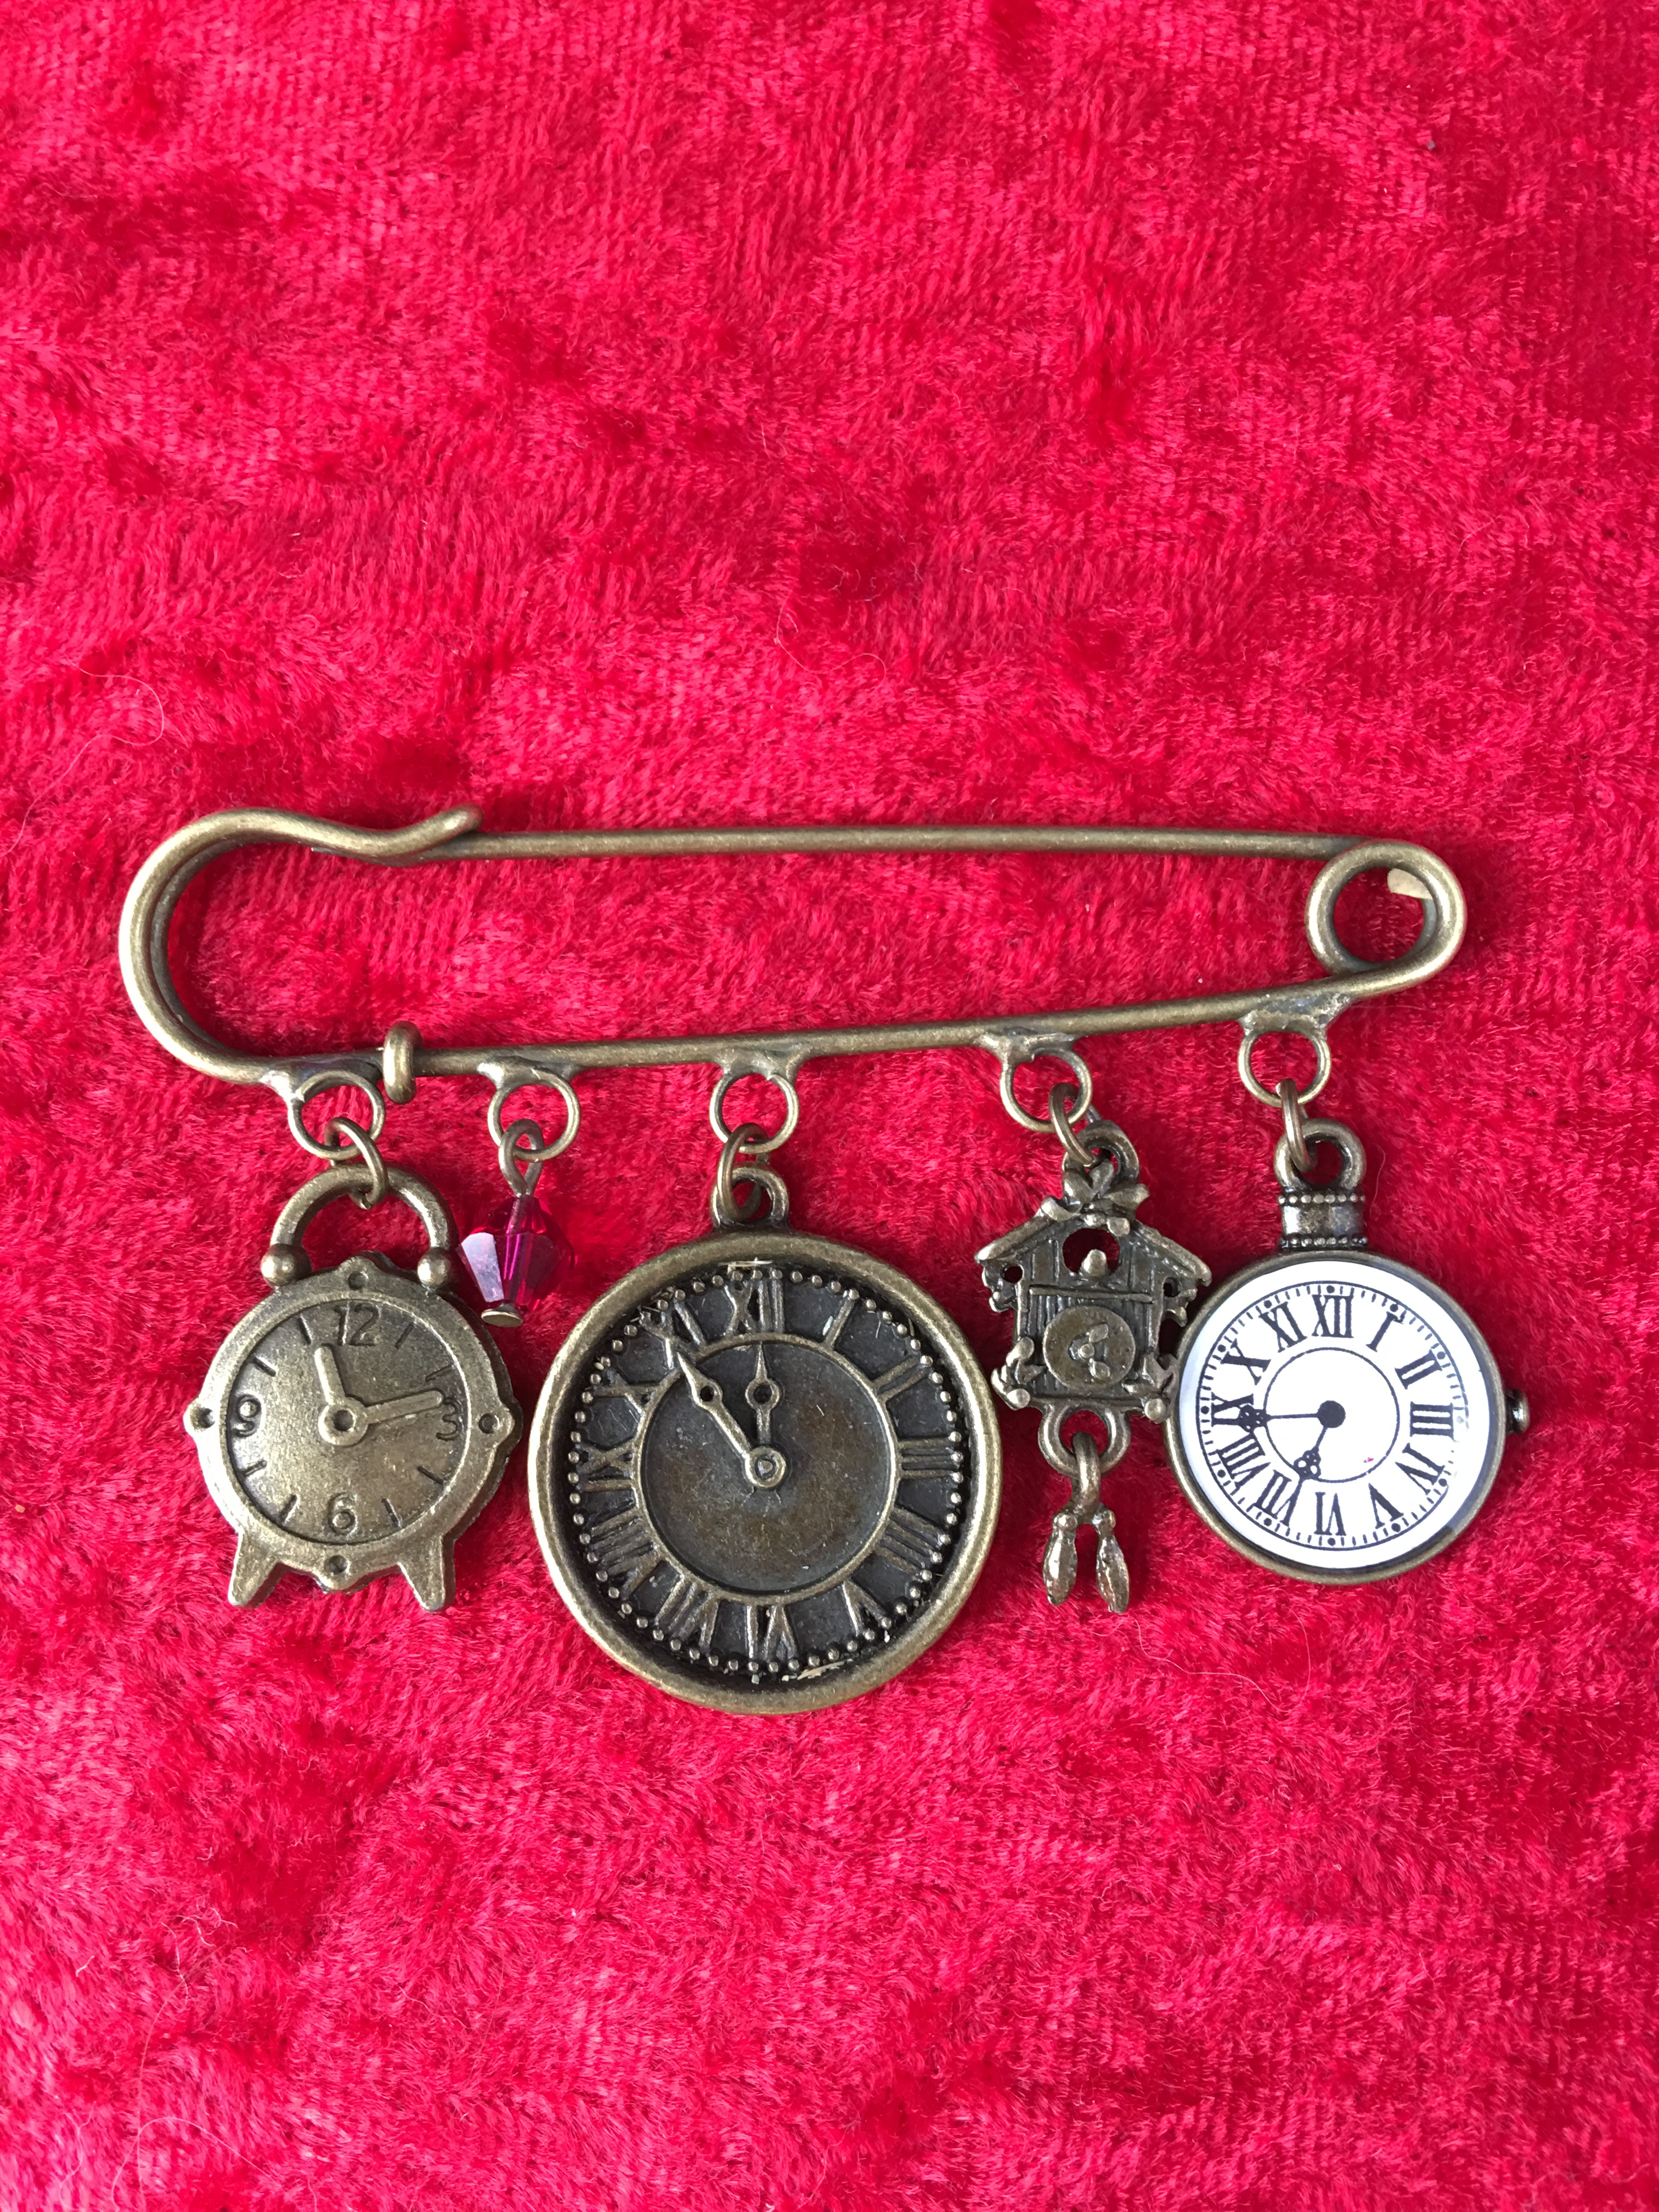 kilt pin brooch clocks